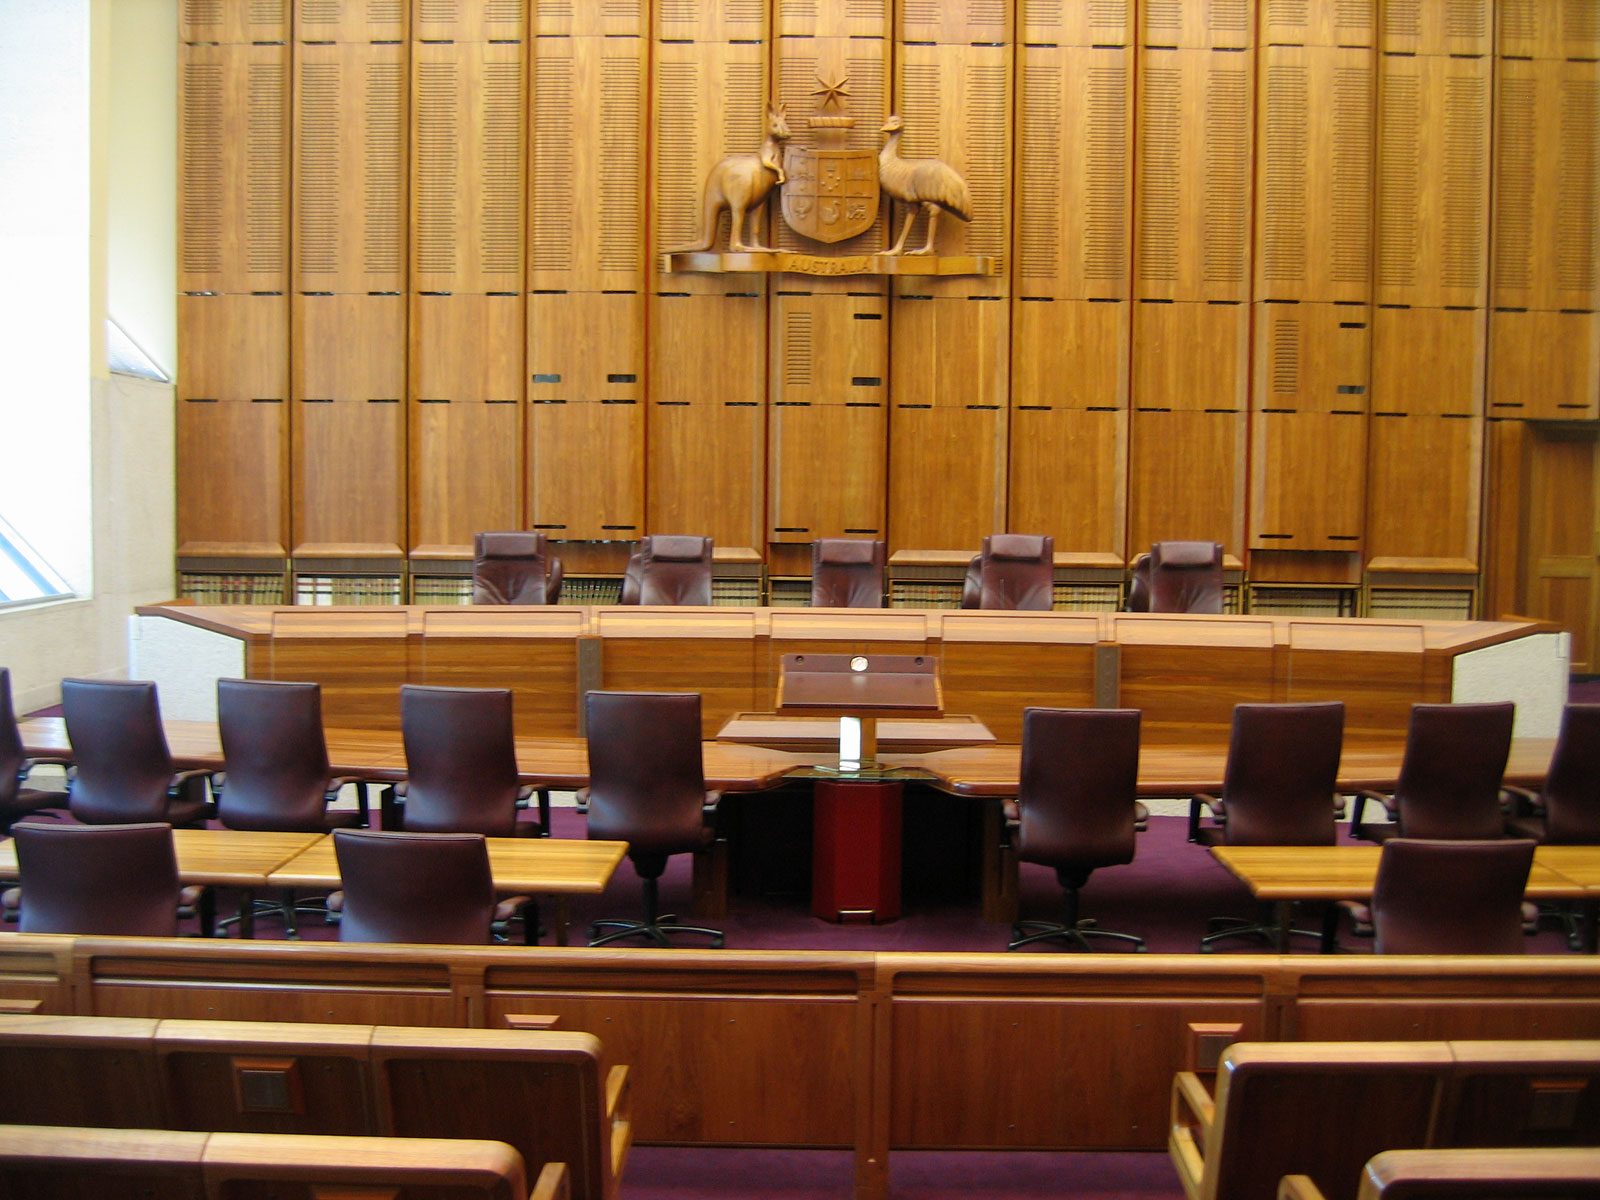 law court background - photo #48